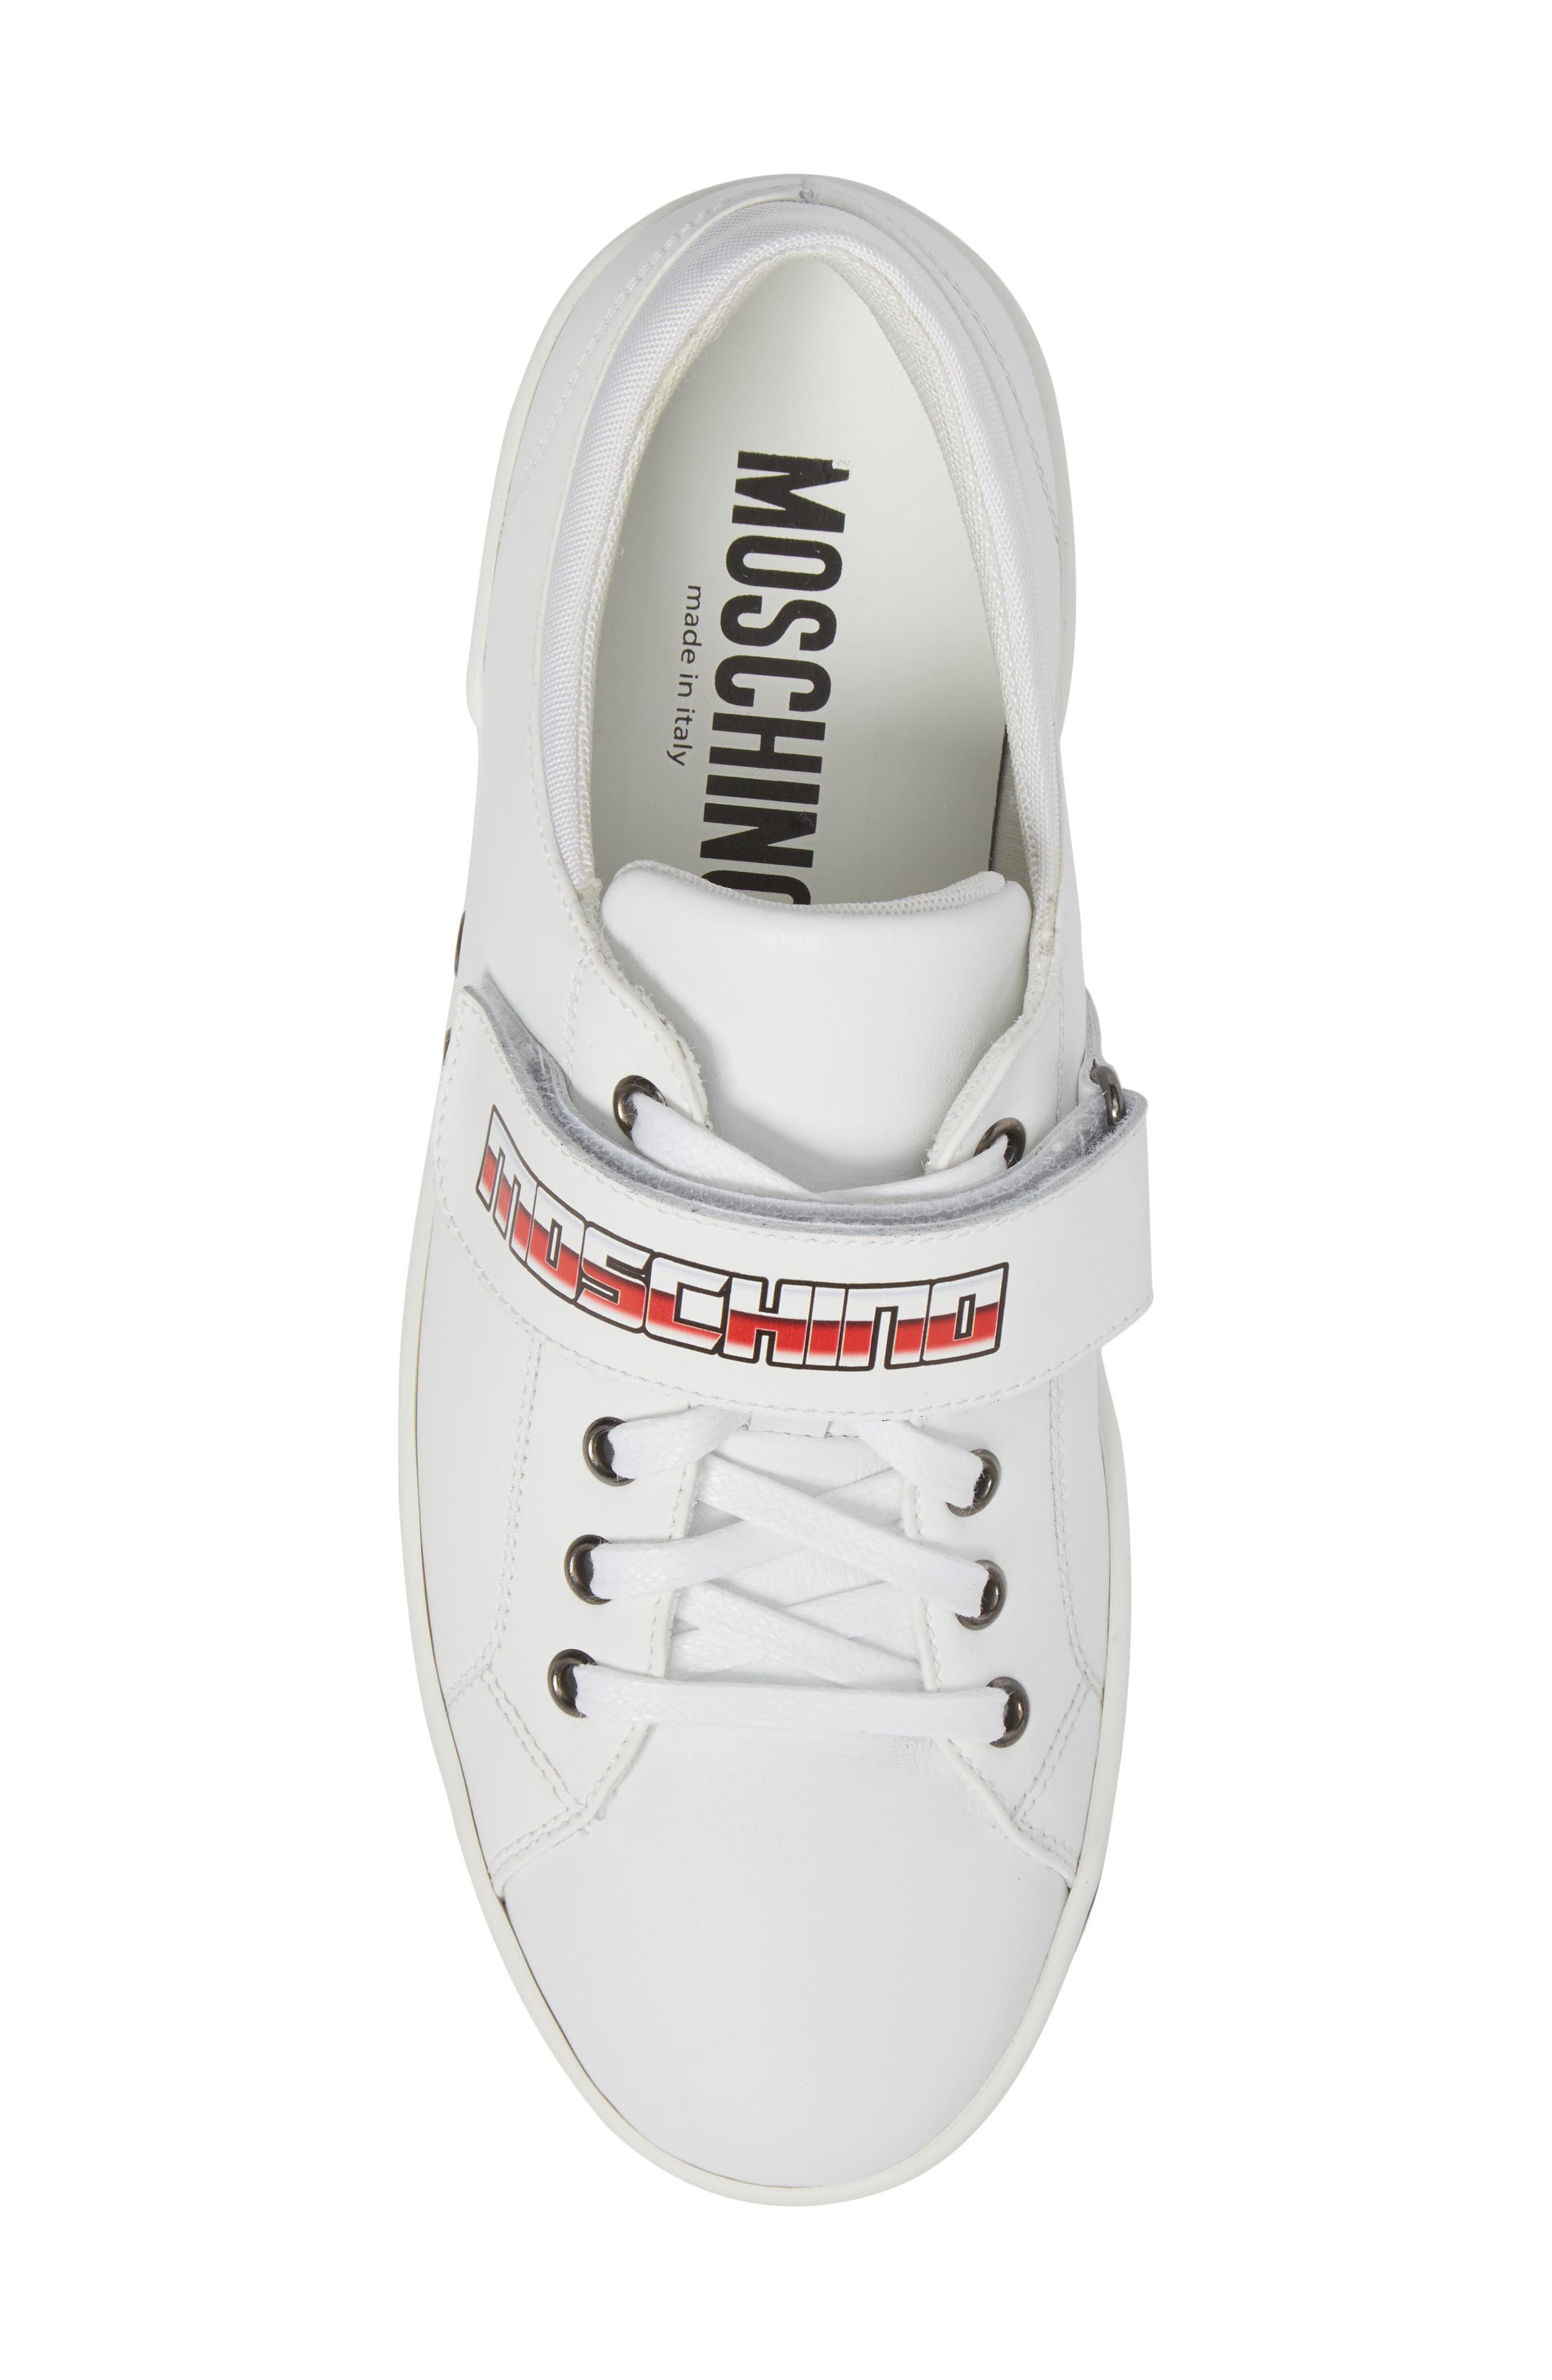 Strap Sneaker,                             Alternate thumbnail 5, color,                             White Leather